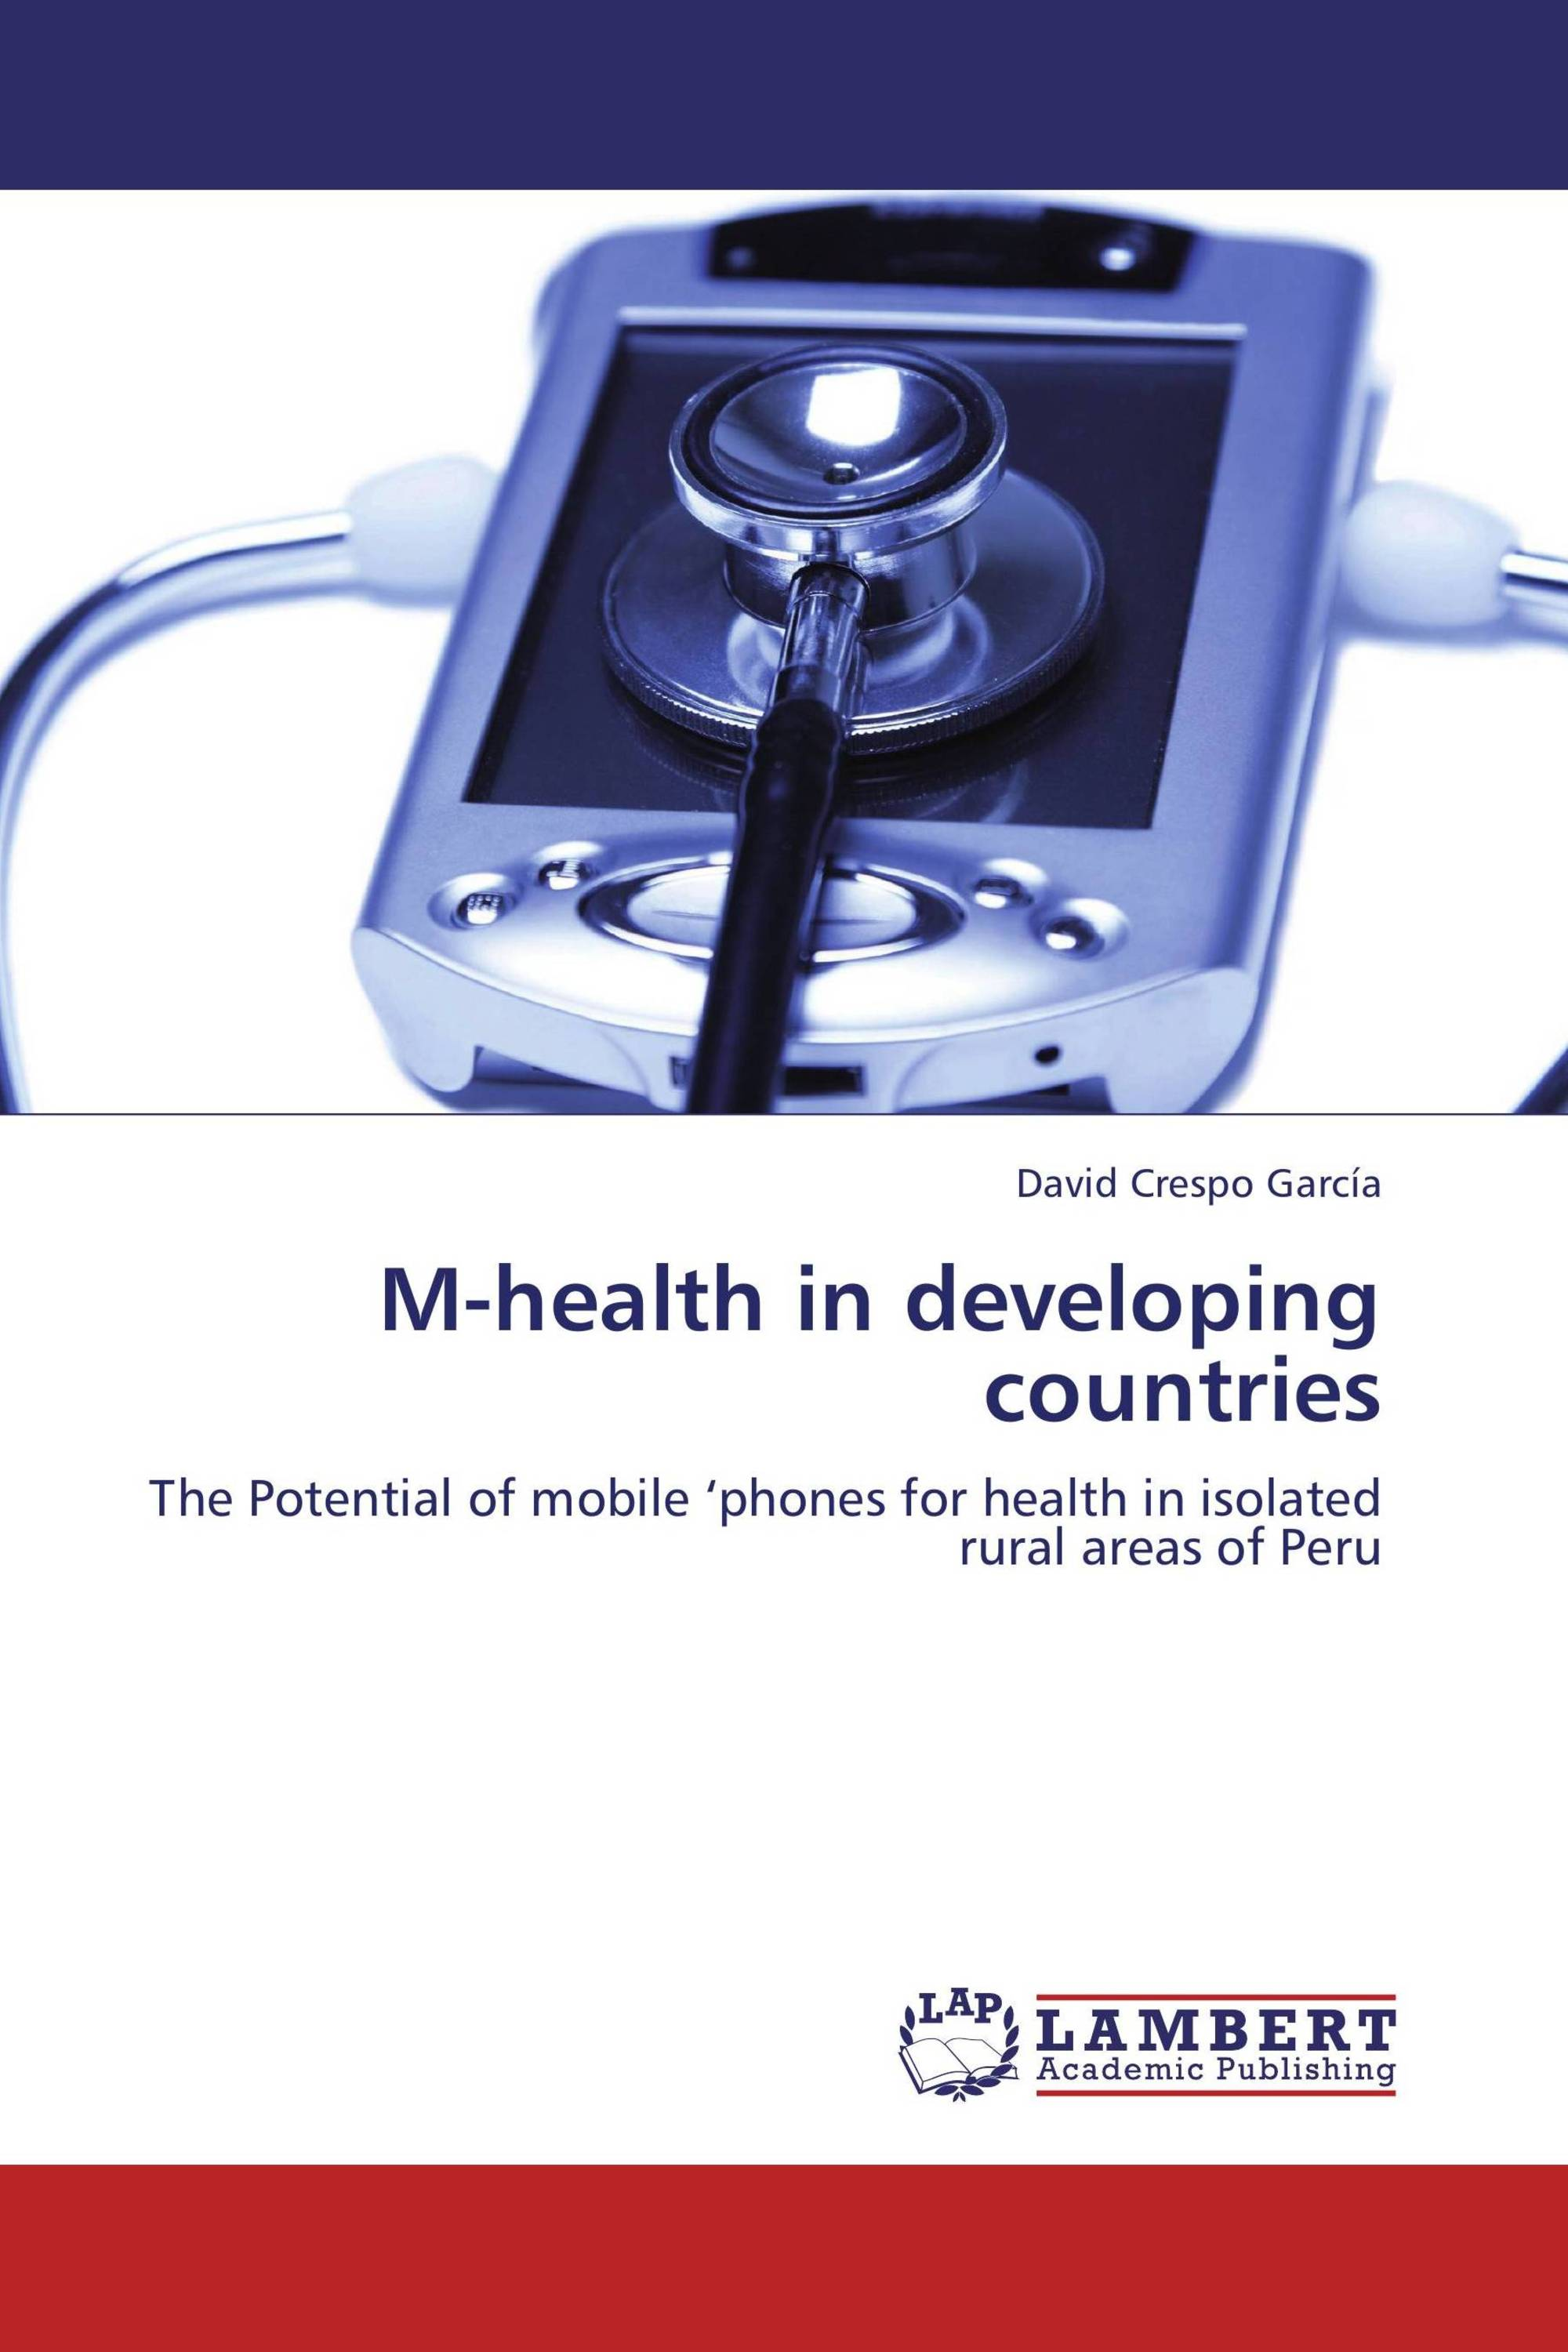 M-health in developing countries